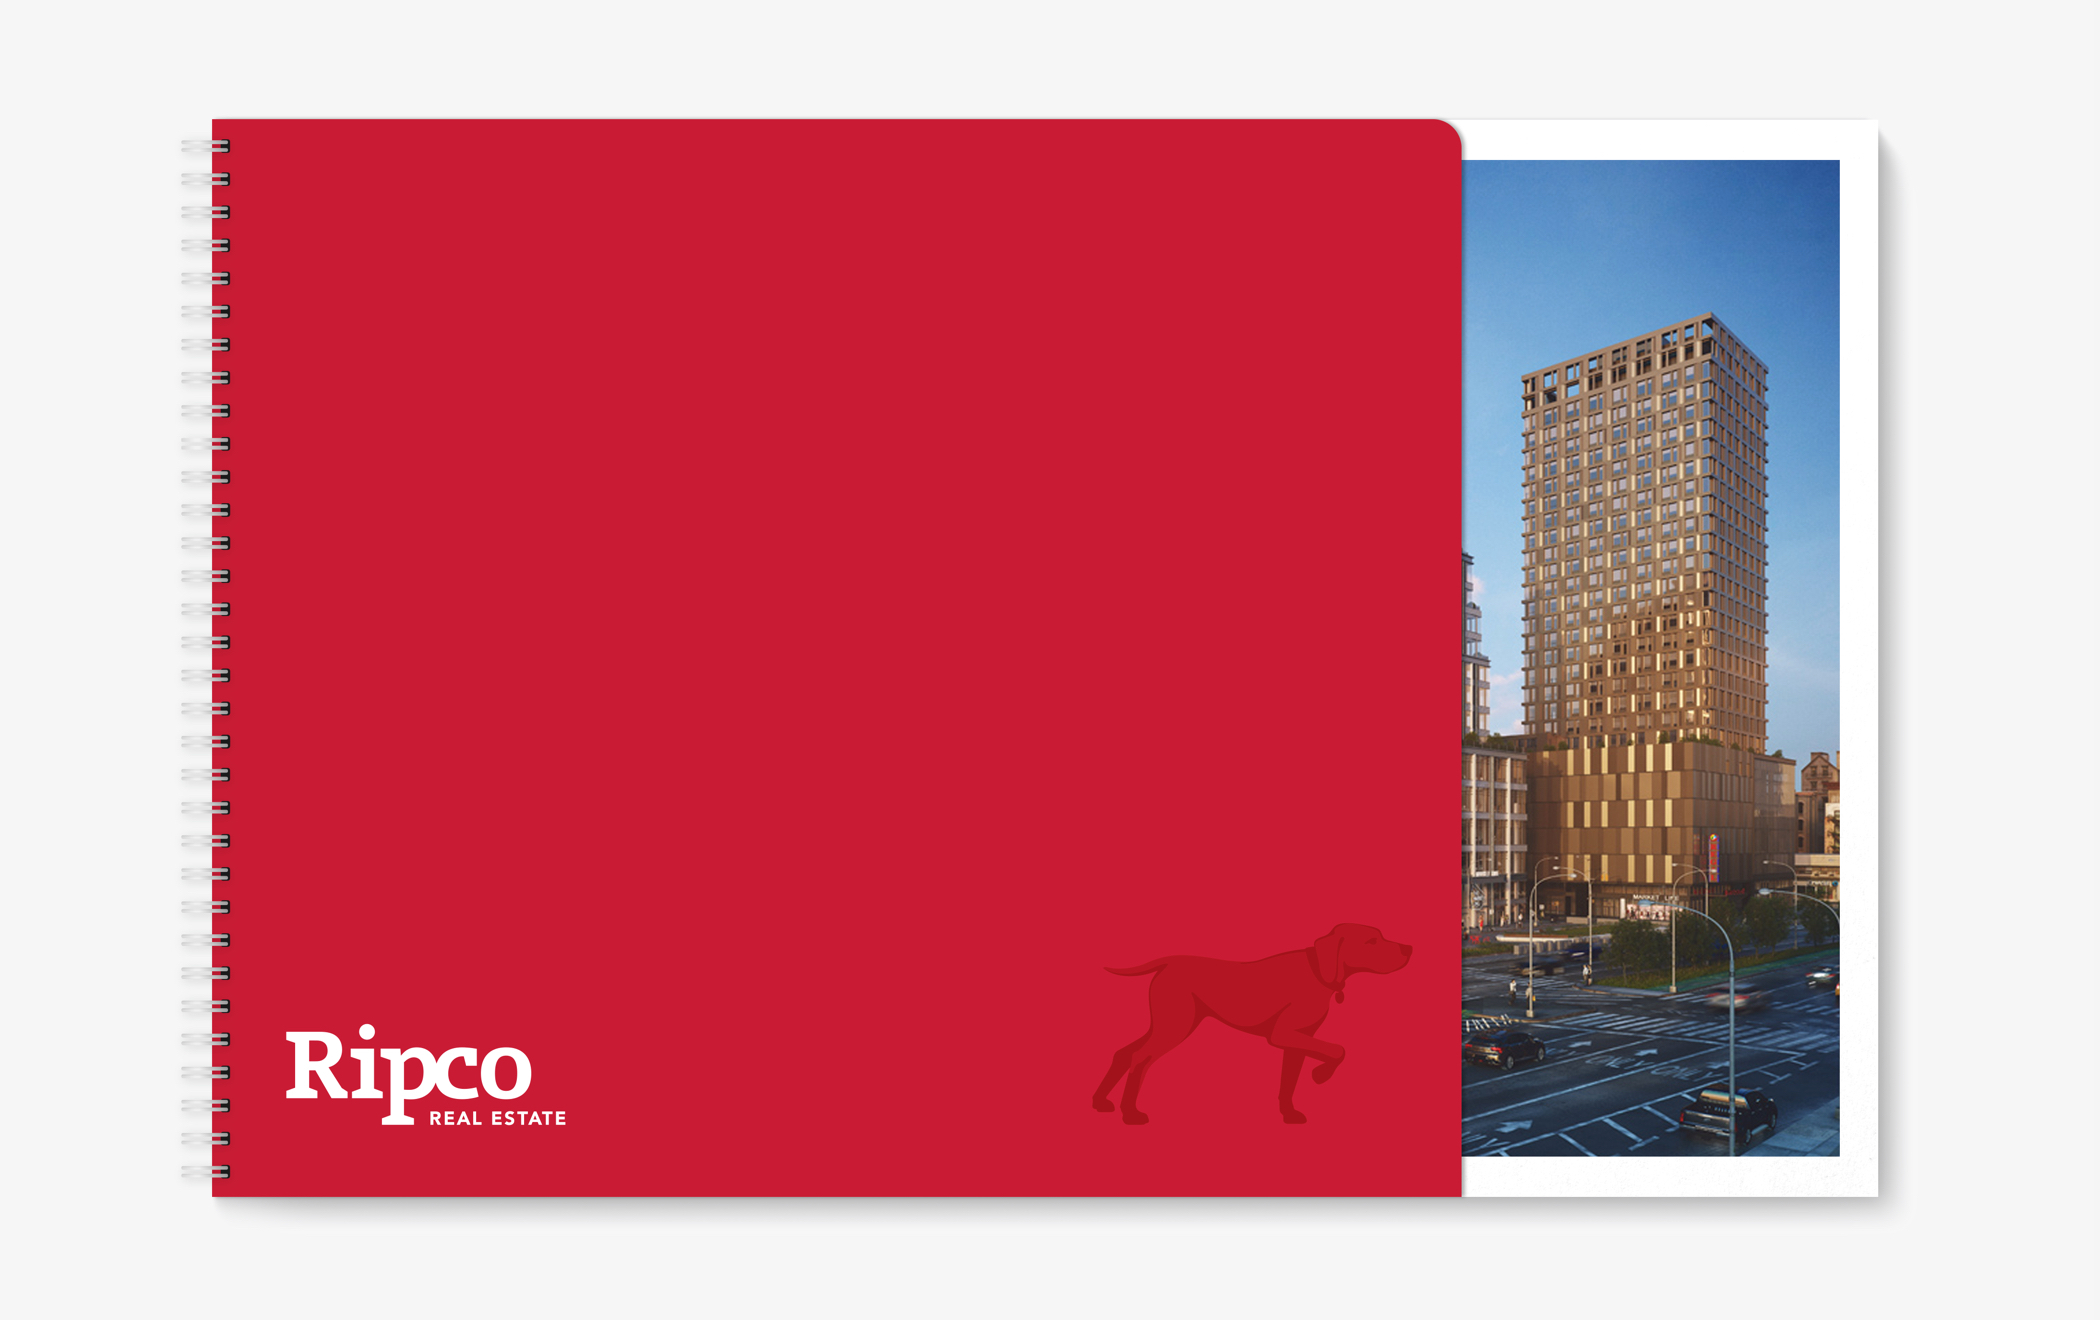 The distinctive red cover of a Ripco presentation book with the brand logo and symbol and a photo of a high rise building.